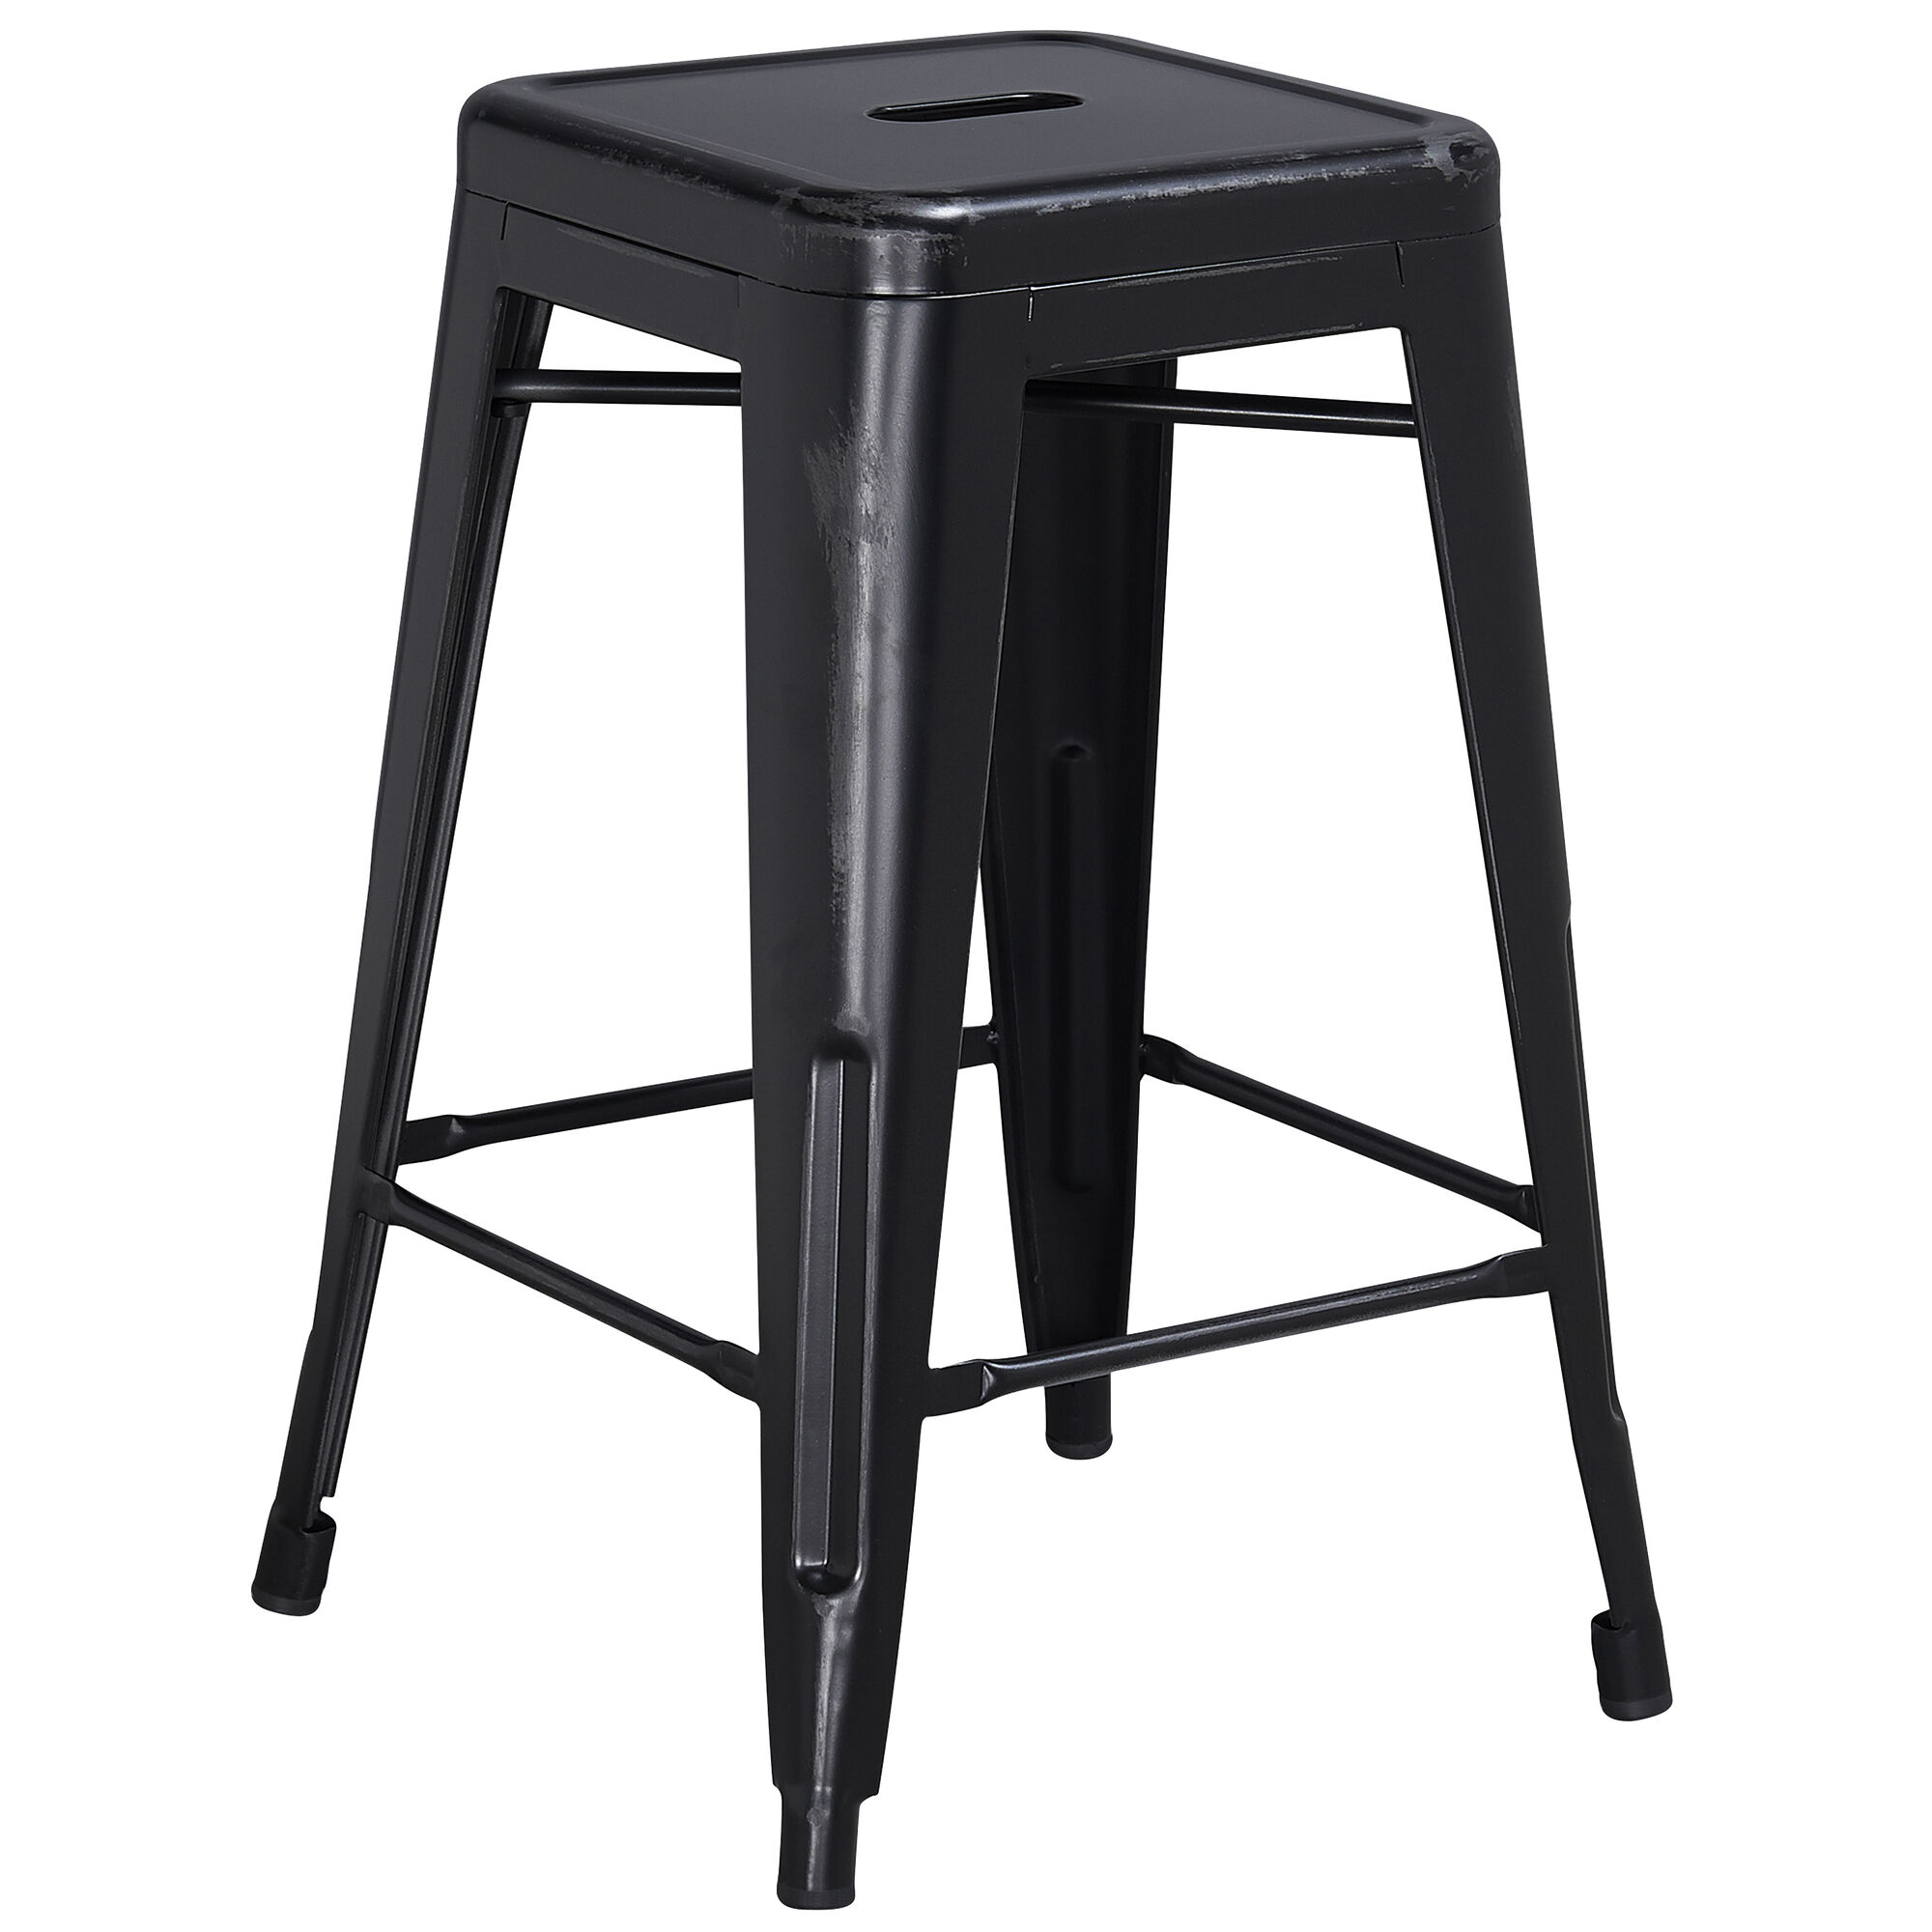 Enjoyable Commercial Grade 24 High Backless Distressed Black Metal Indoor Outdoor Counter Height Stool Gamerscity Chair Design For Home Gamerscityorg